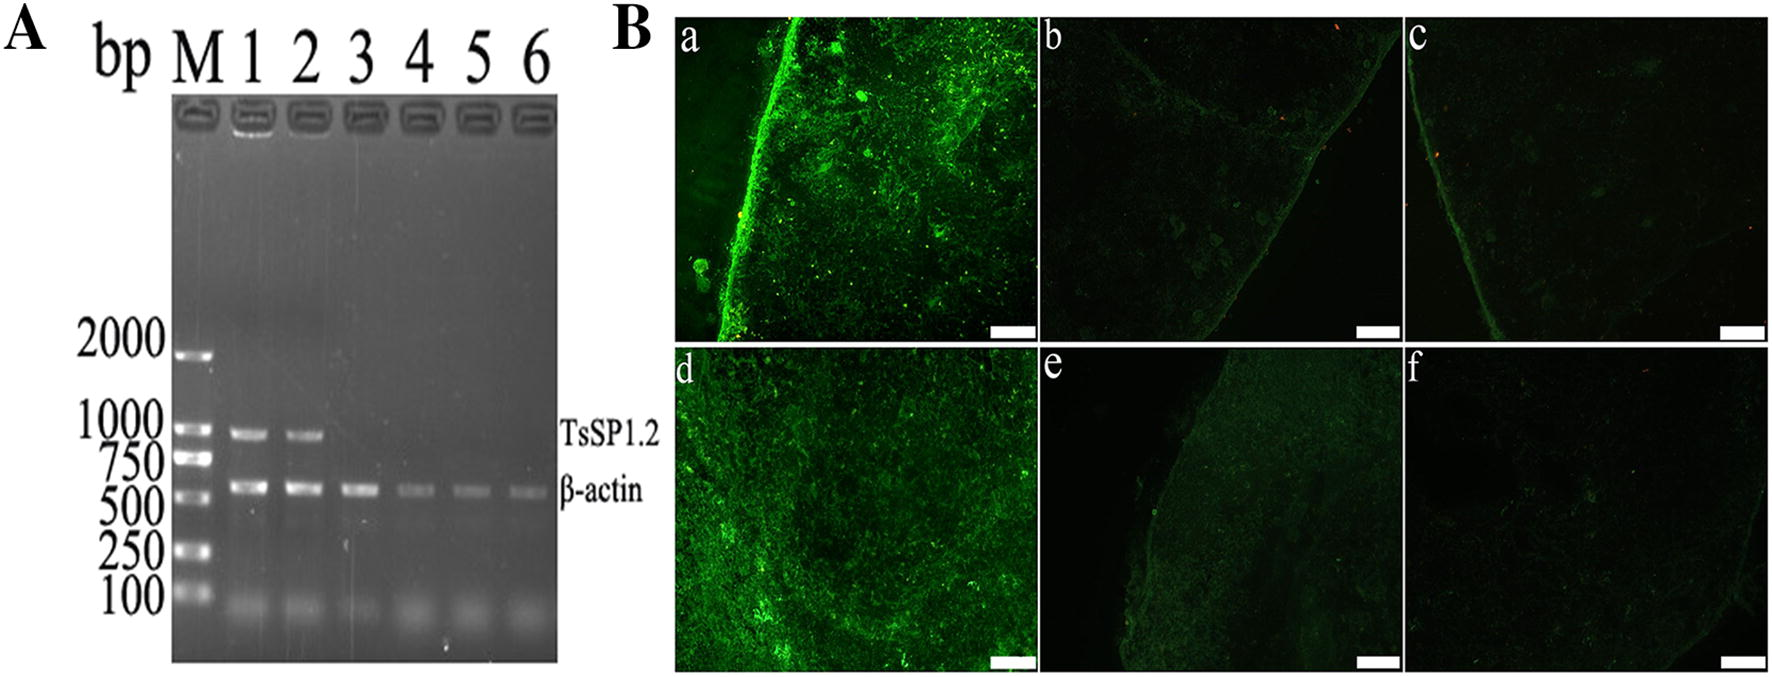 The in vivo transcription and expression of TsSP1.2 in mice vaccinated with TsSP1.2 DNA/ S. typhimurium. A RT-PCR analysis of TsSP1.2 mRNA transcription. TsSP1.2 mRNA was detected in spleen (lane 1) and MLN (lane 2) of TsSP1.2-immunized mice, either in spleen (lane 3) or in MLN (lane 4) of mice vaccinated with only empty pcDNA3.1, not in spleen (lane 5) and MLN (lane 6) of mice inoculated with only PBS. B IFT detection of TsSP1.2 expression. The expression of TsSP1.2 was detected in spleen (a) and MLN (d) of TsSP1.2-immunized mice by IFT with anti-rTsSP1.2 serum, but not in spleen (c) and MLN (f) by IFT with pre-immune serum. By using anti-rTsSP1.2 serum, no distinct staining was observed in spleen (b) and MLN (e) of mice inoculated with only empty pcDNA3.1. Scale bar: 100 μm.